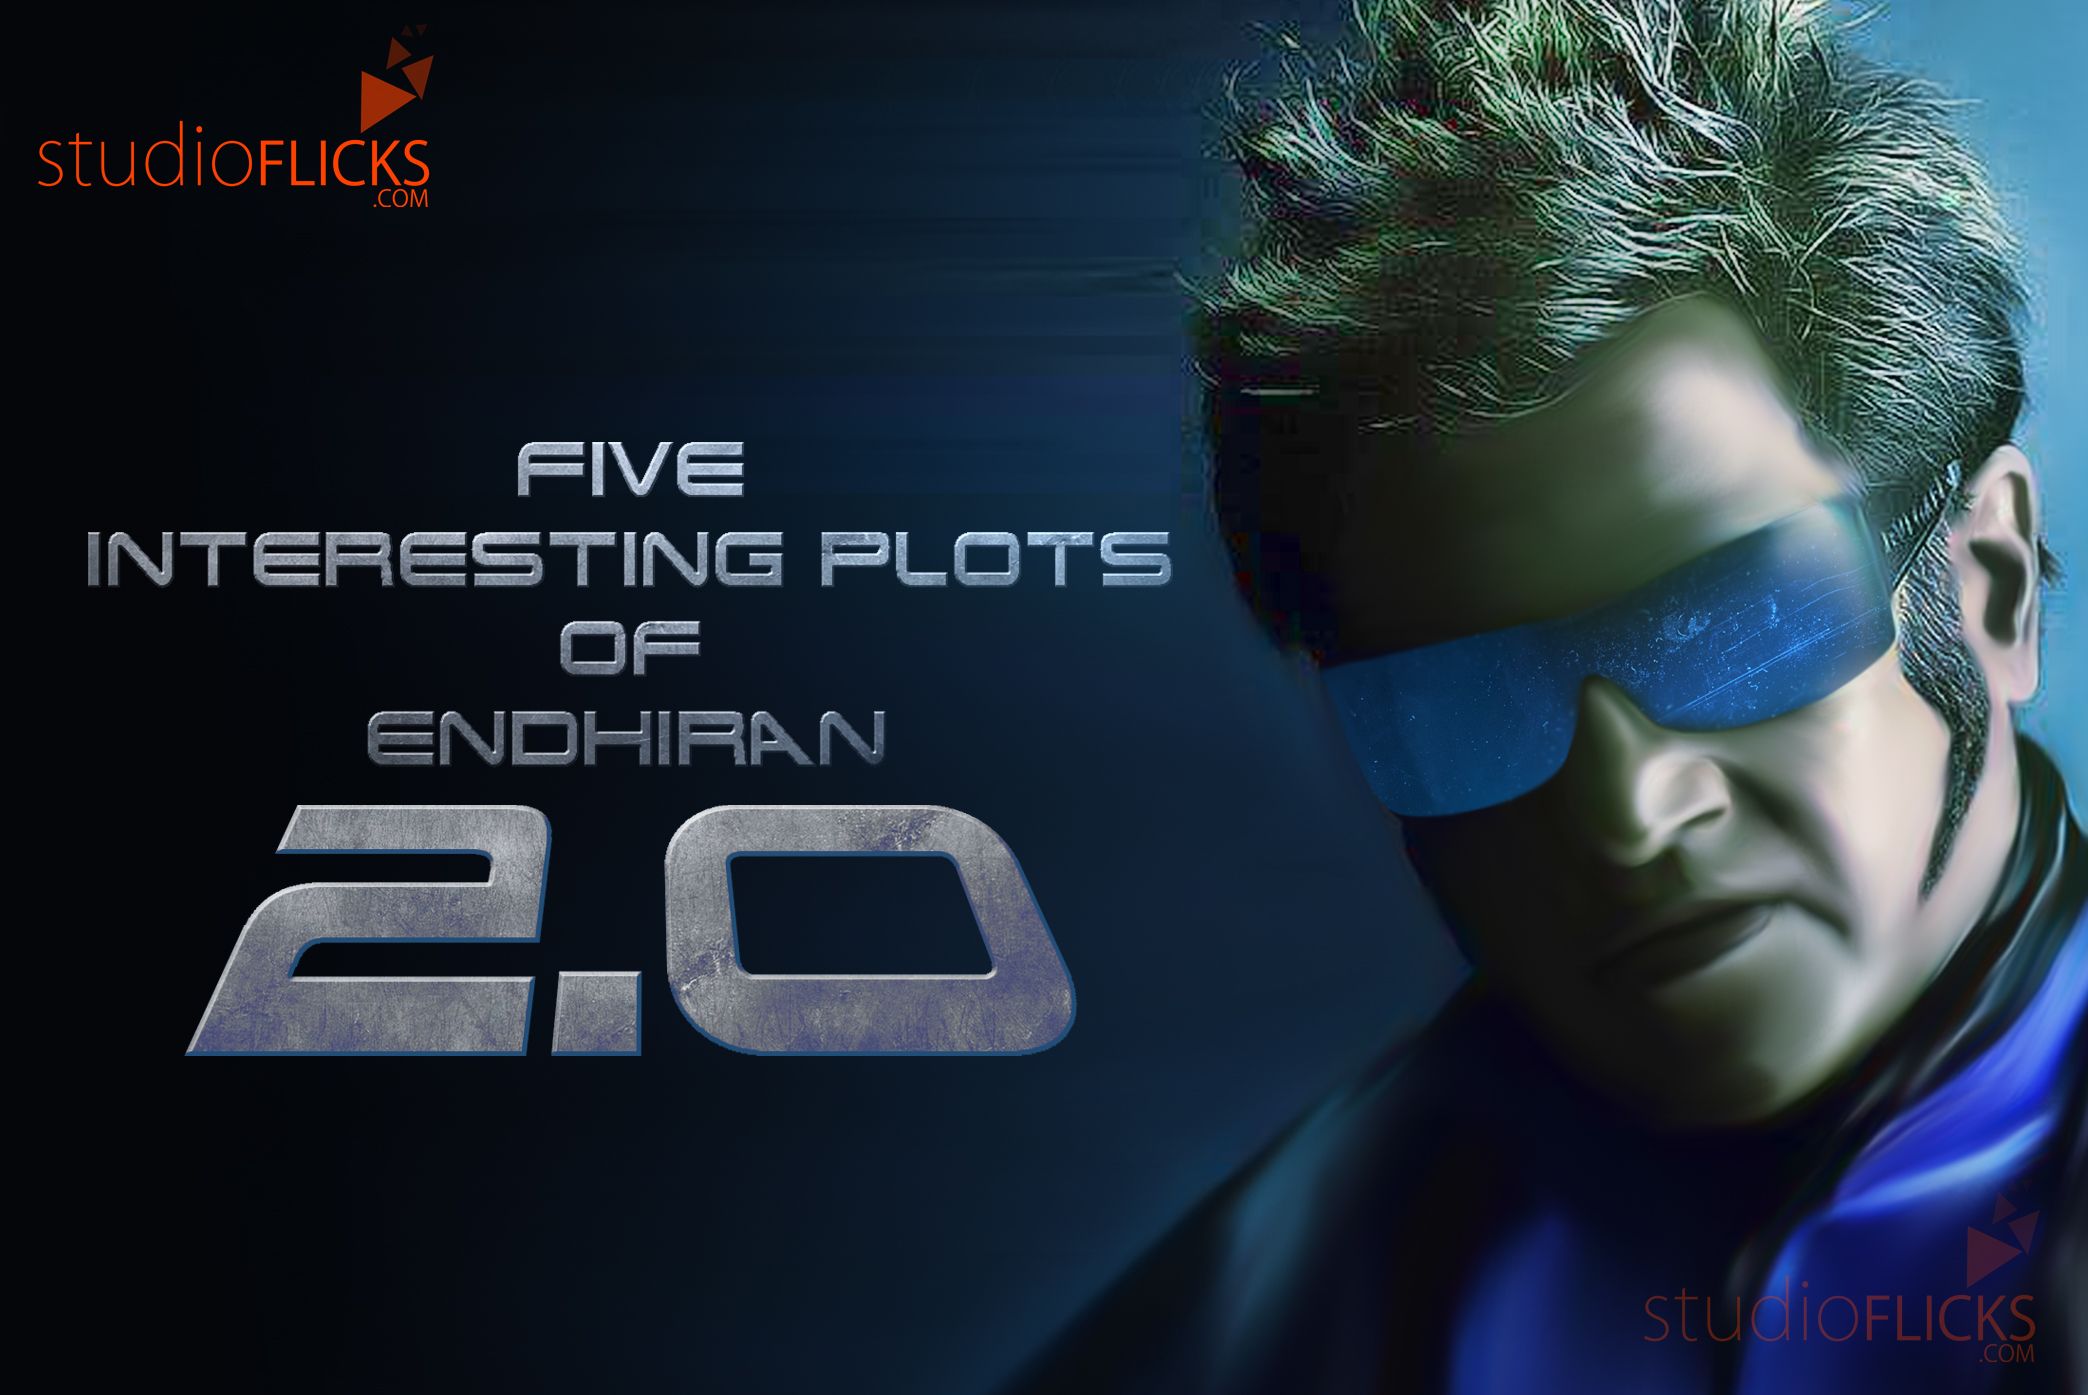 5-interesting-plots-of-enthiran-2-0